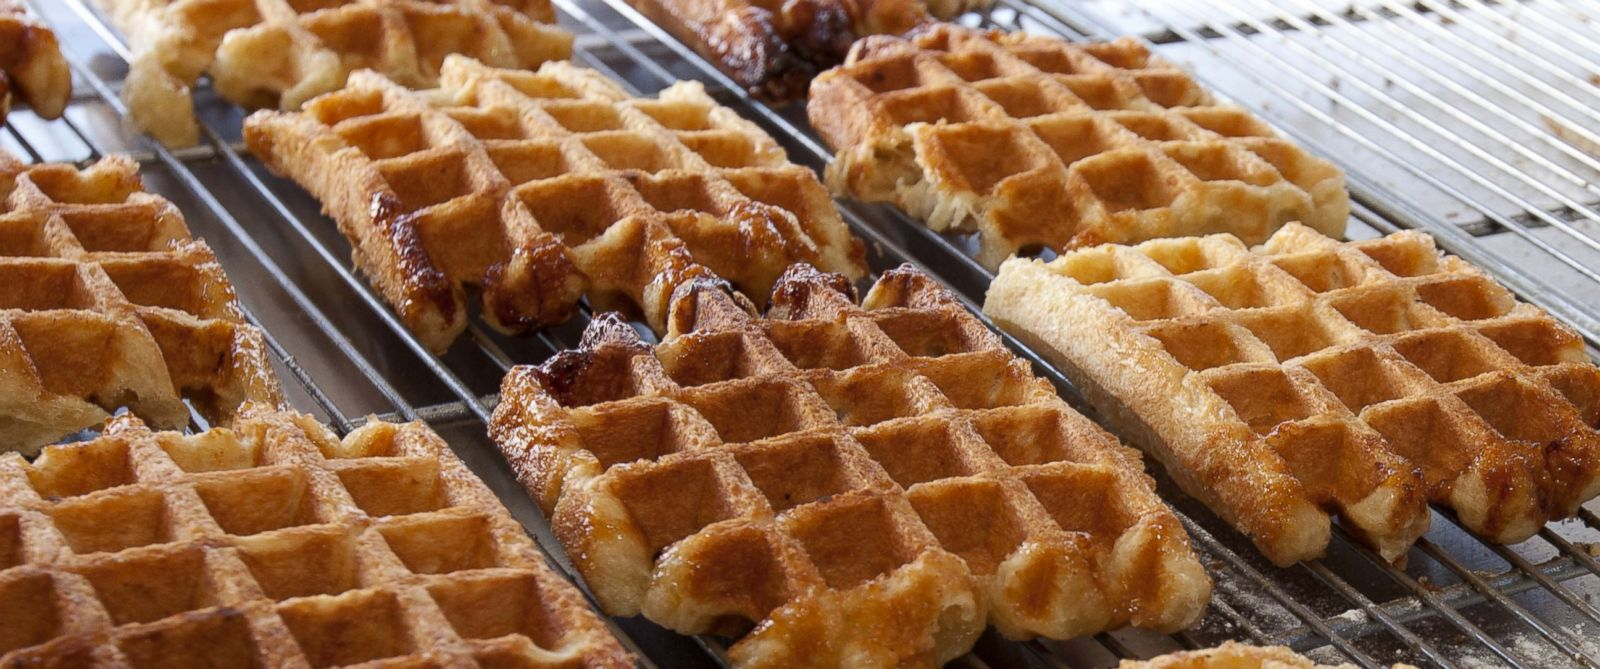 PHOTO: Belgian waffles.